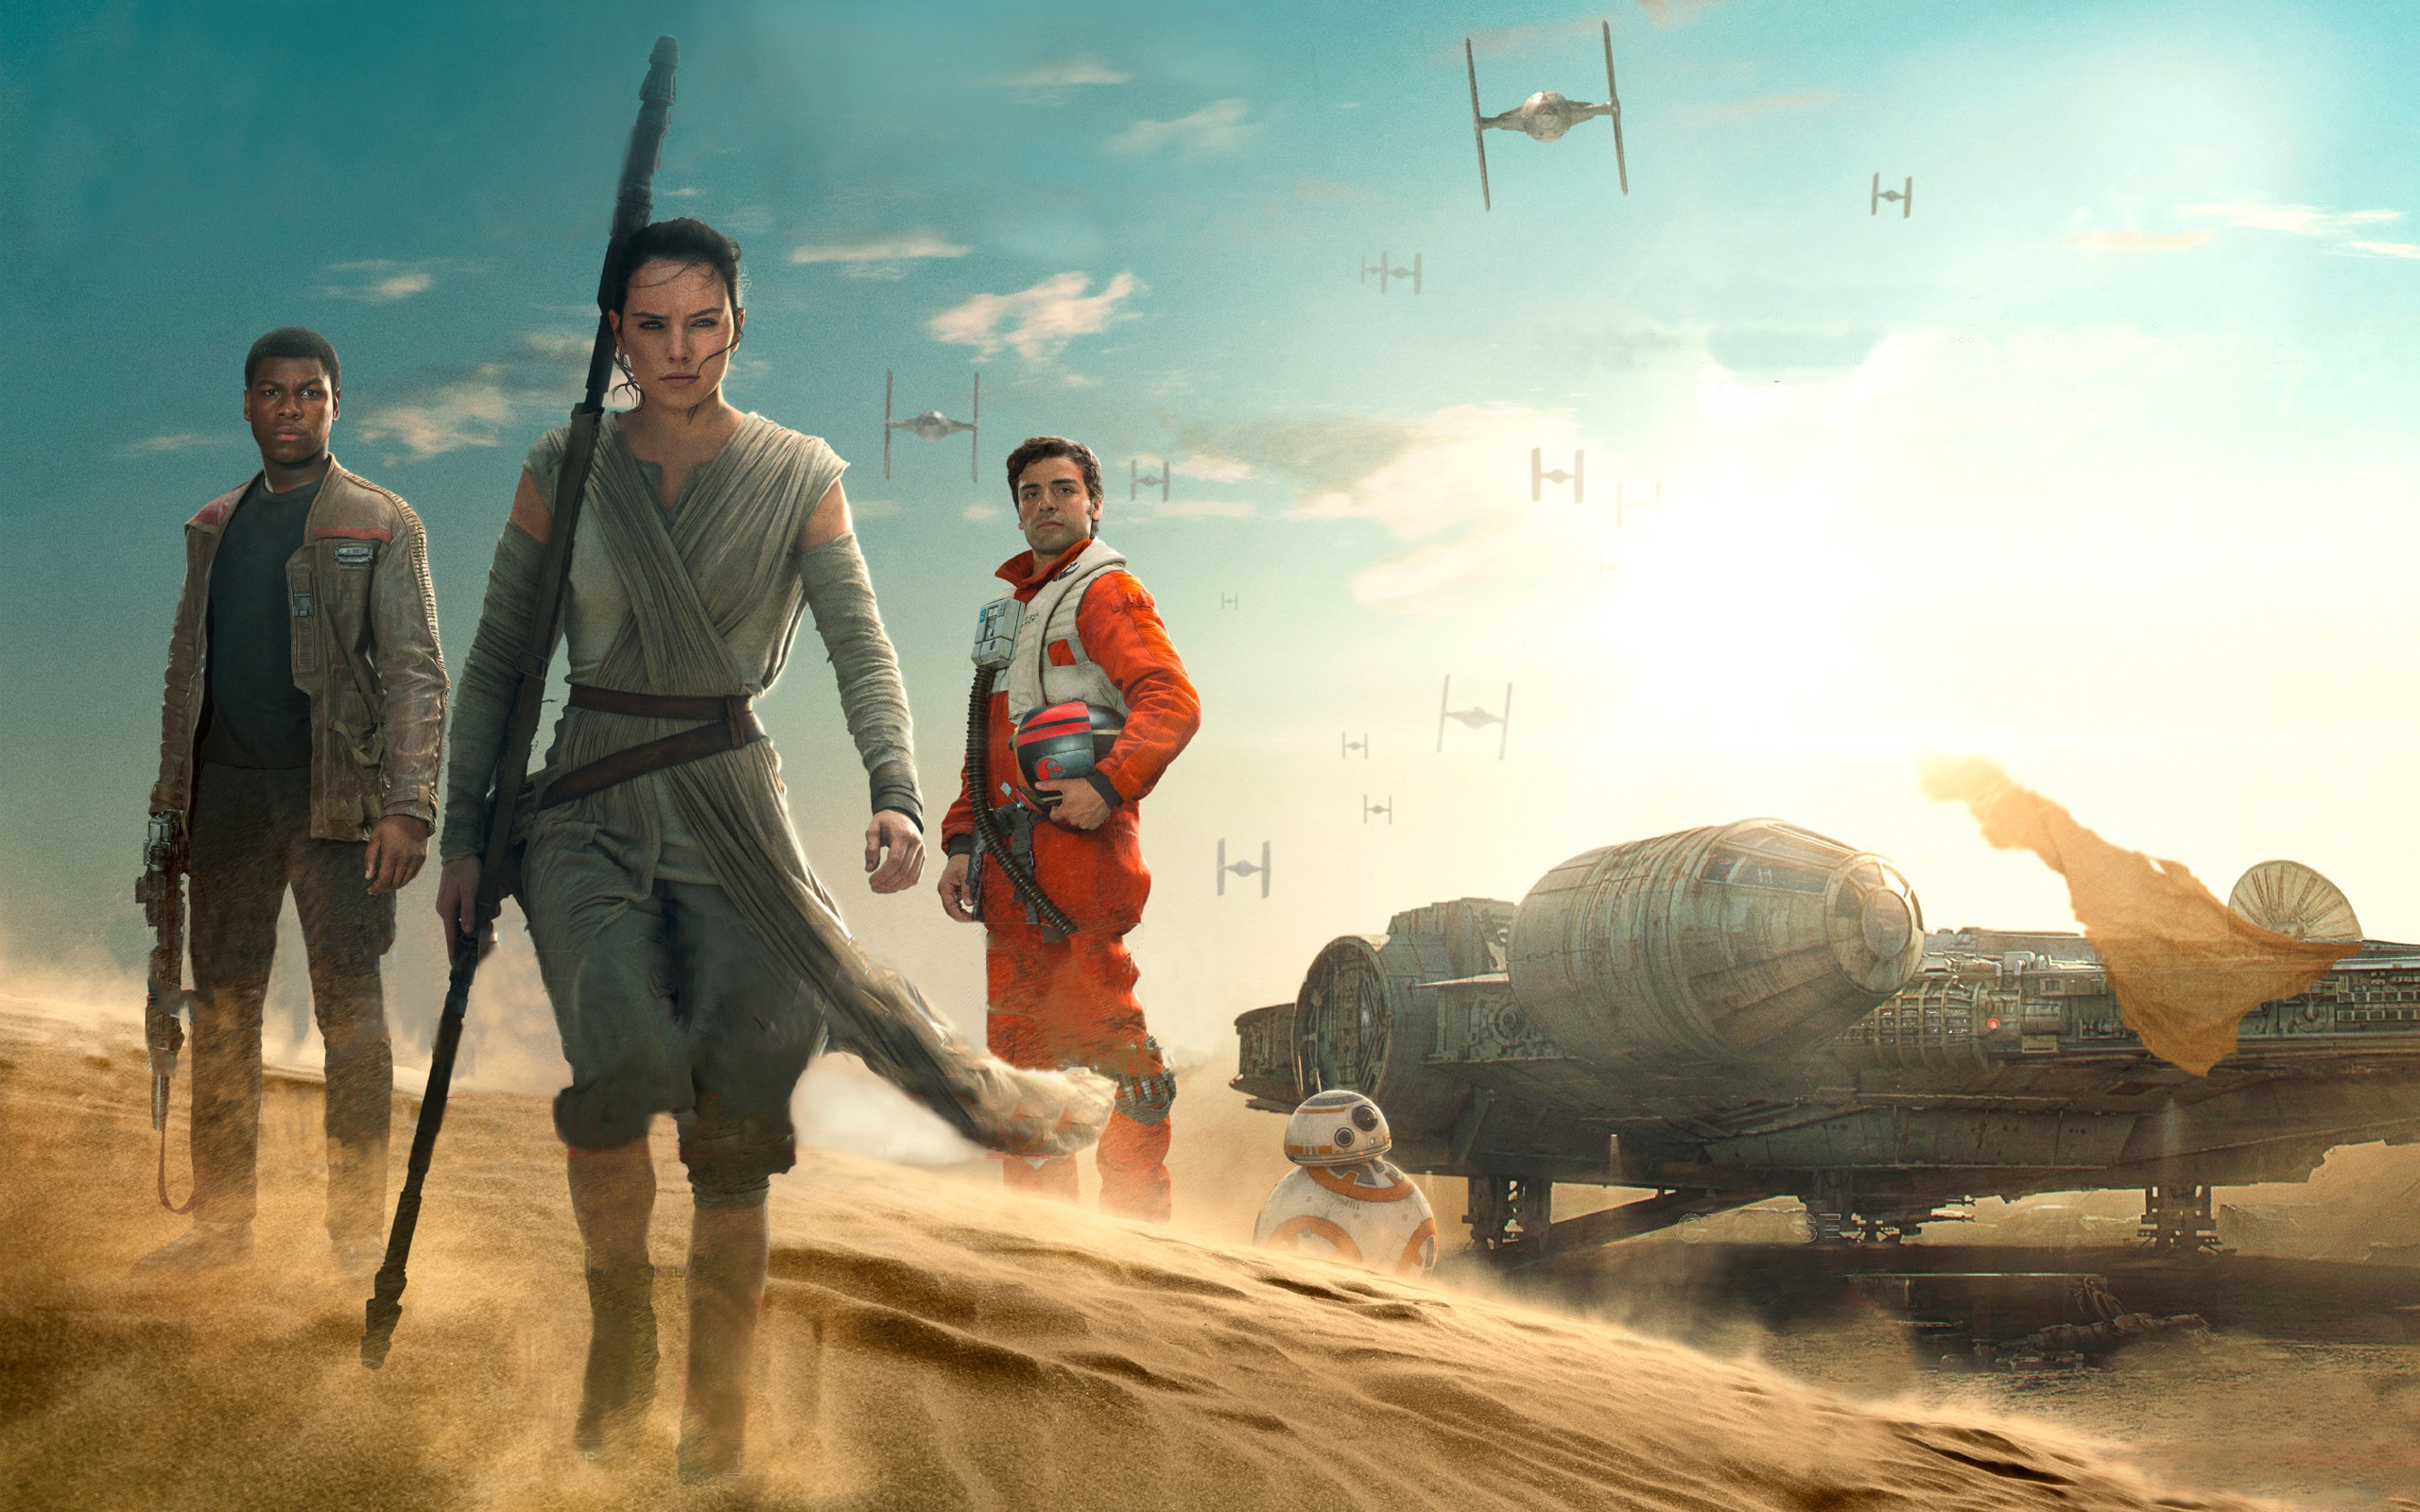 New Collector S Edition Of Star Wars The Force Awakens To Feature